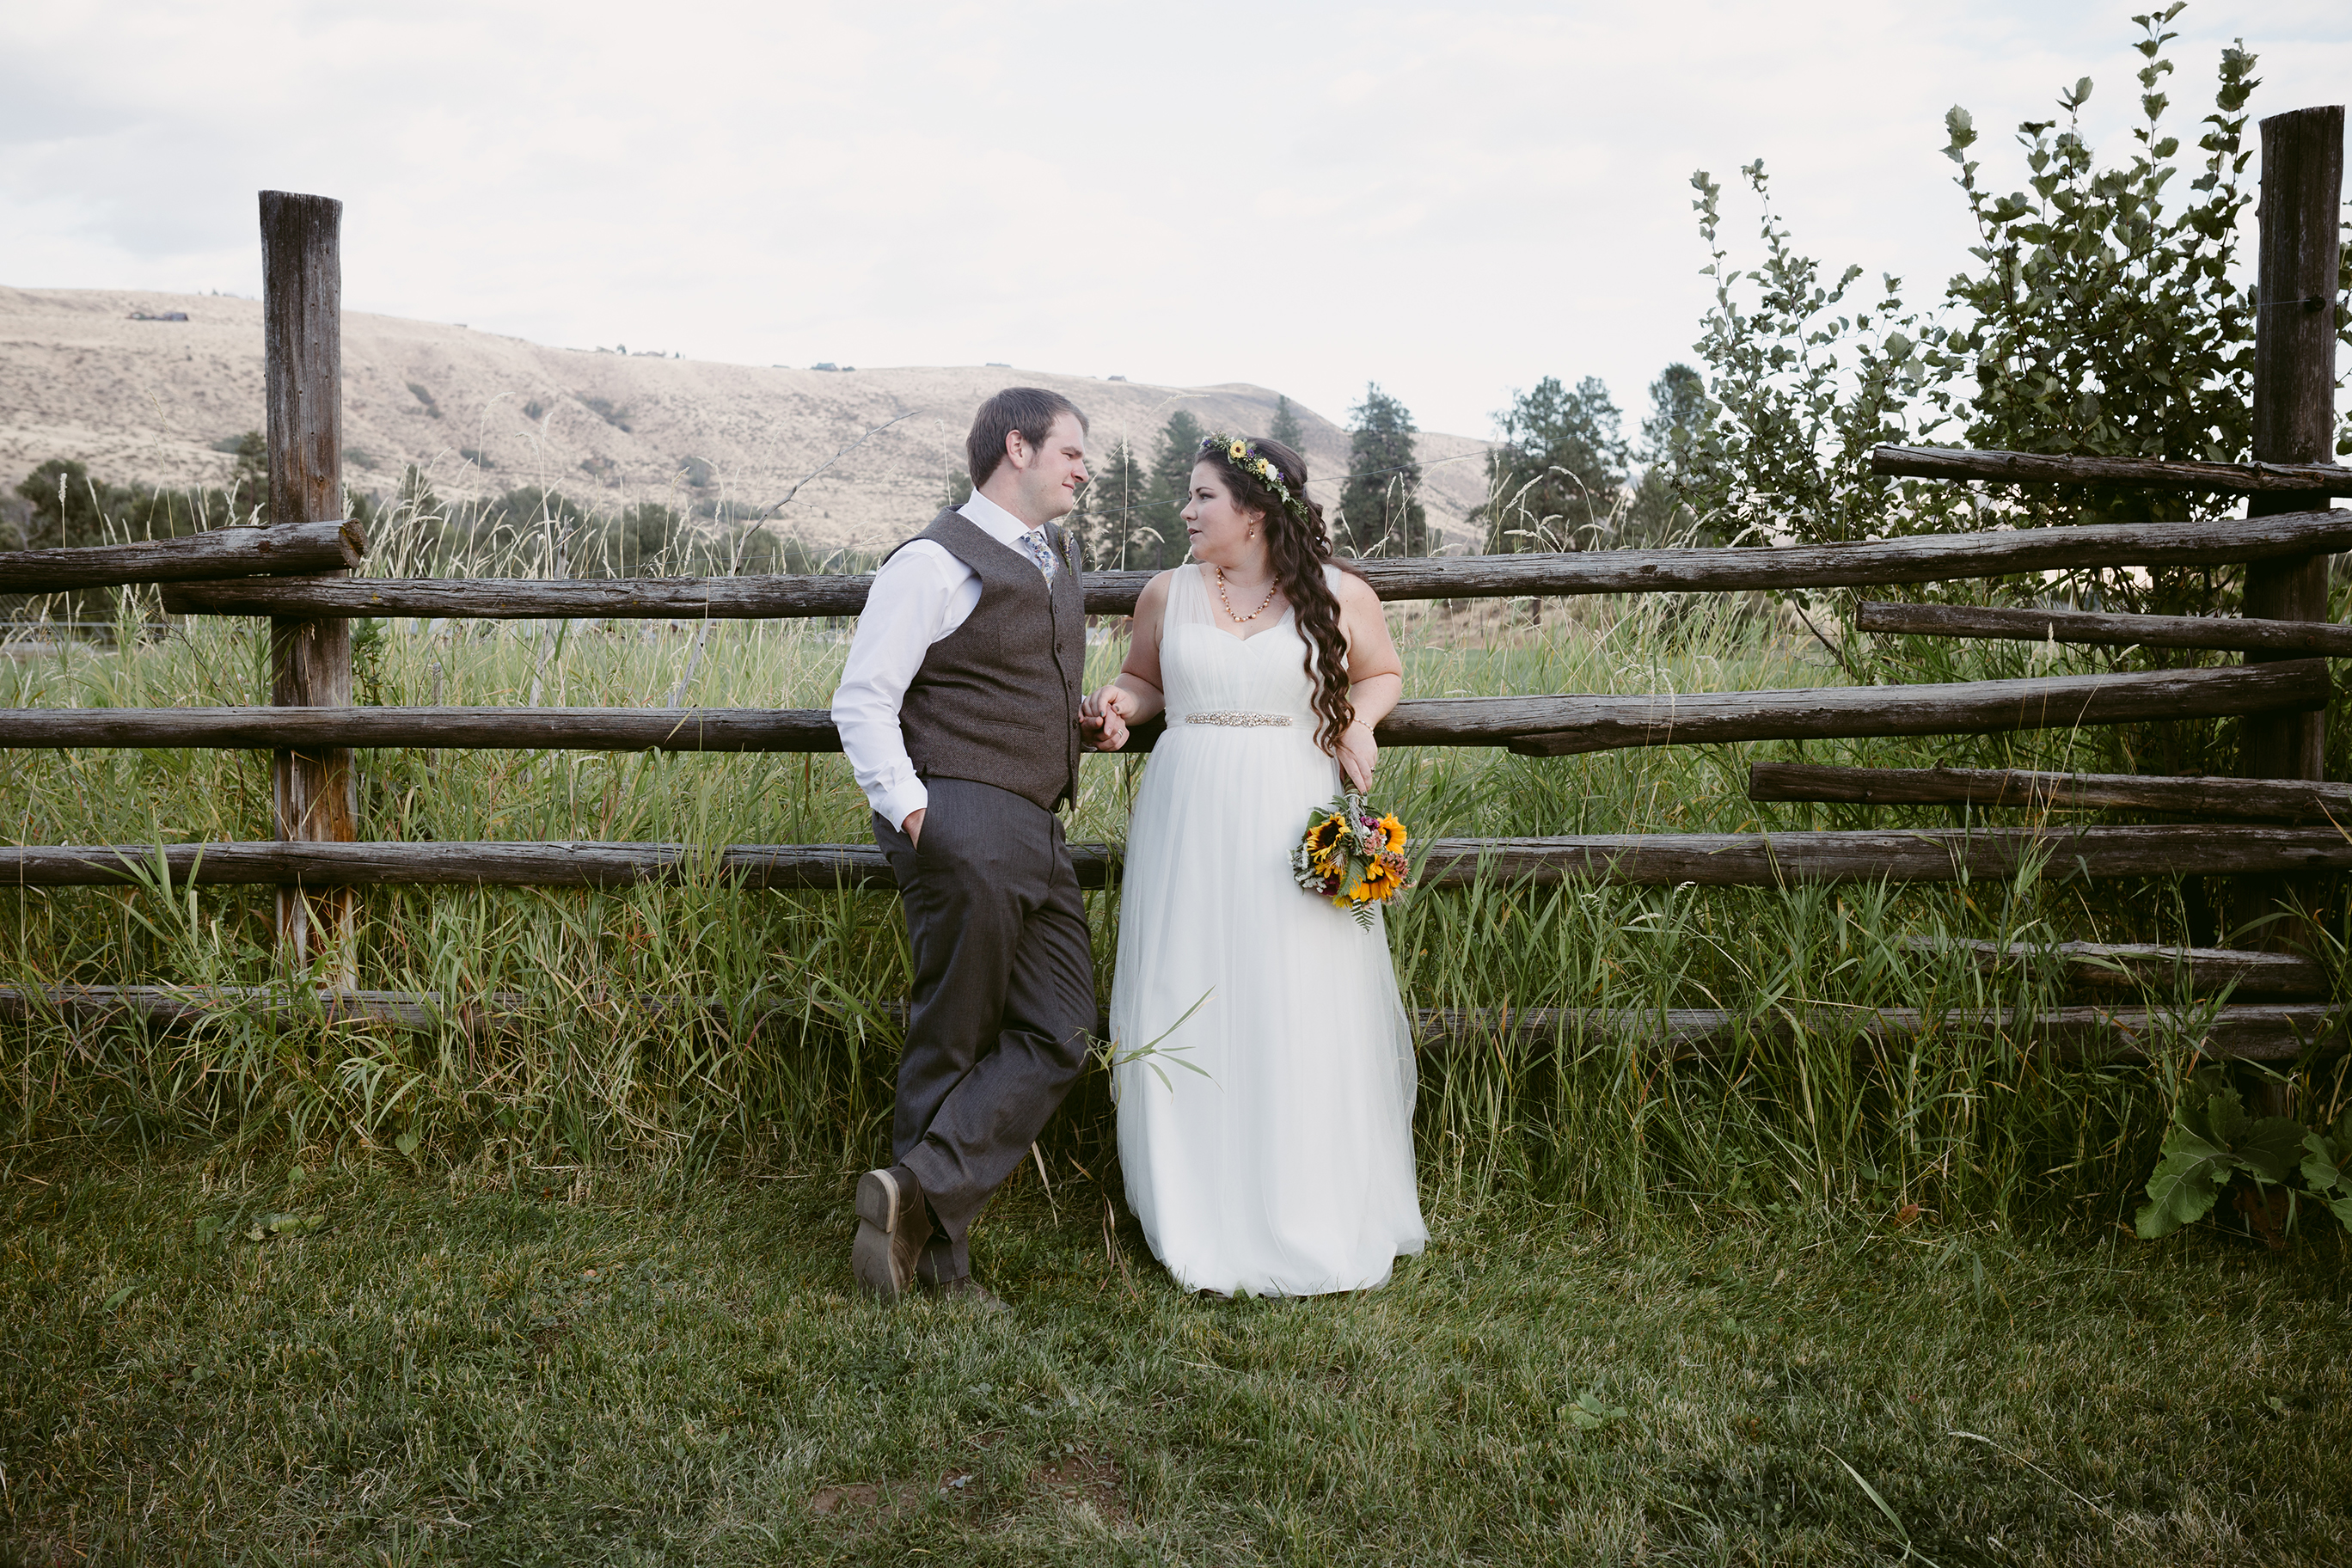 Bride and Groom on Fence Spring Creek Ranch Winthrop Wa